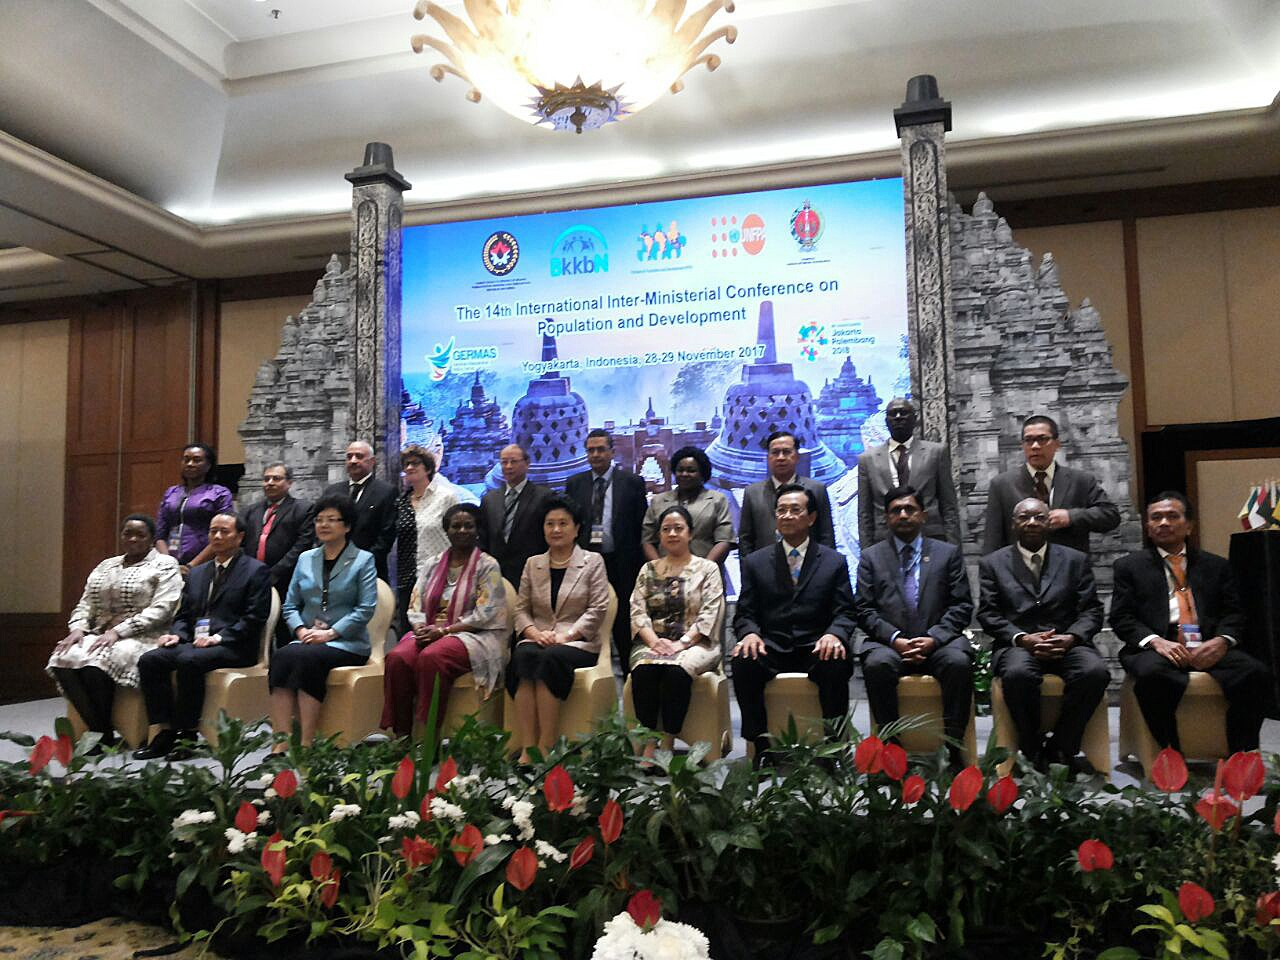 26 countries join conference on population in Yogyakarta